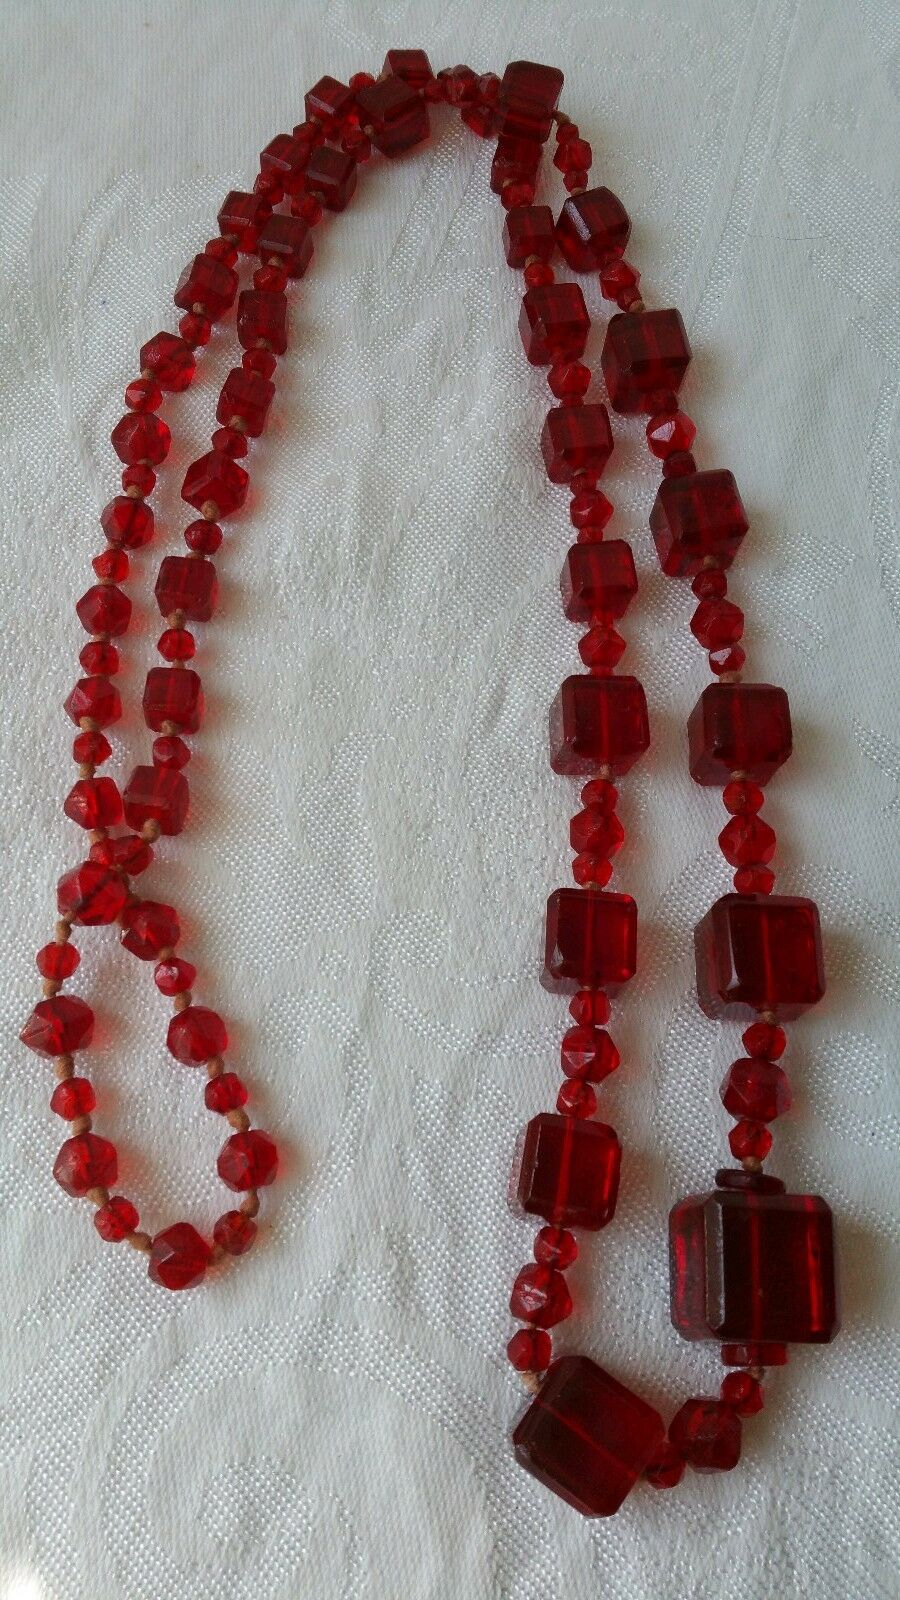 Vintage praying beads necklace with tassel red beads 116